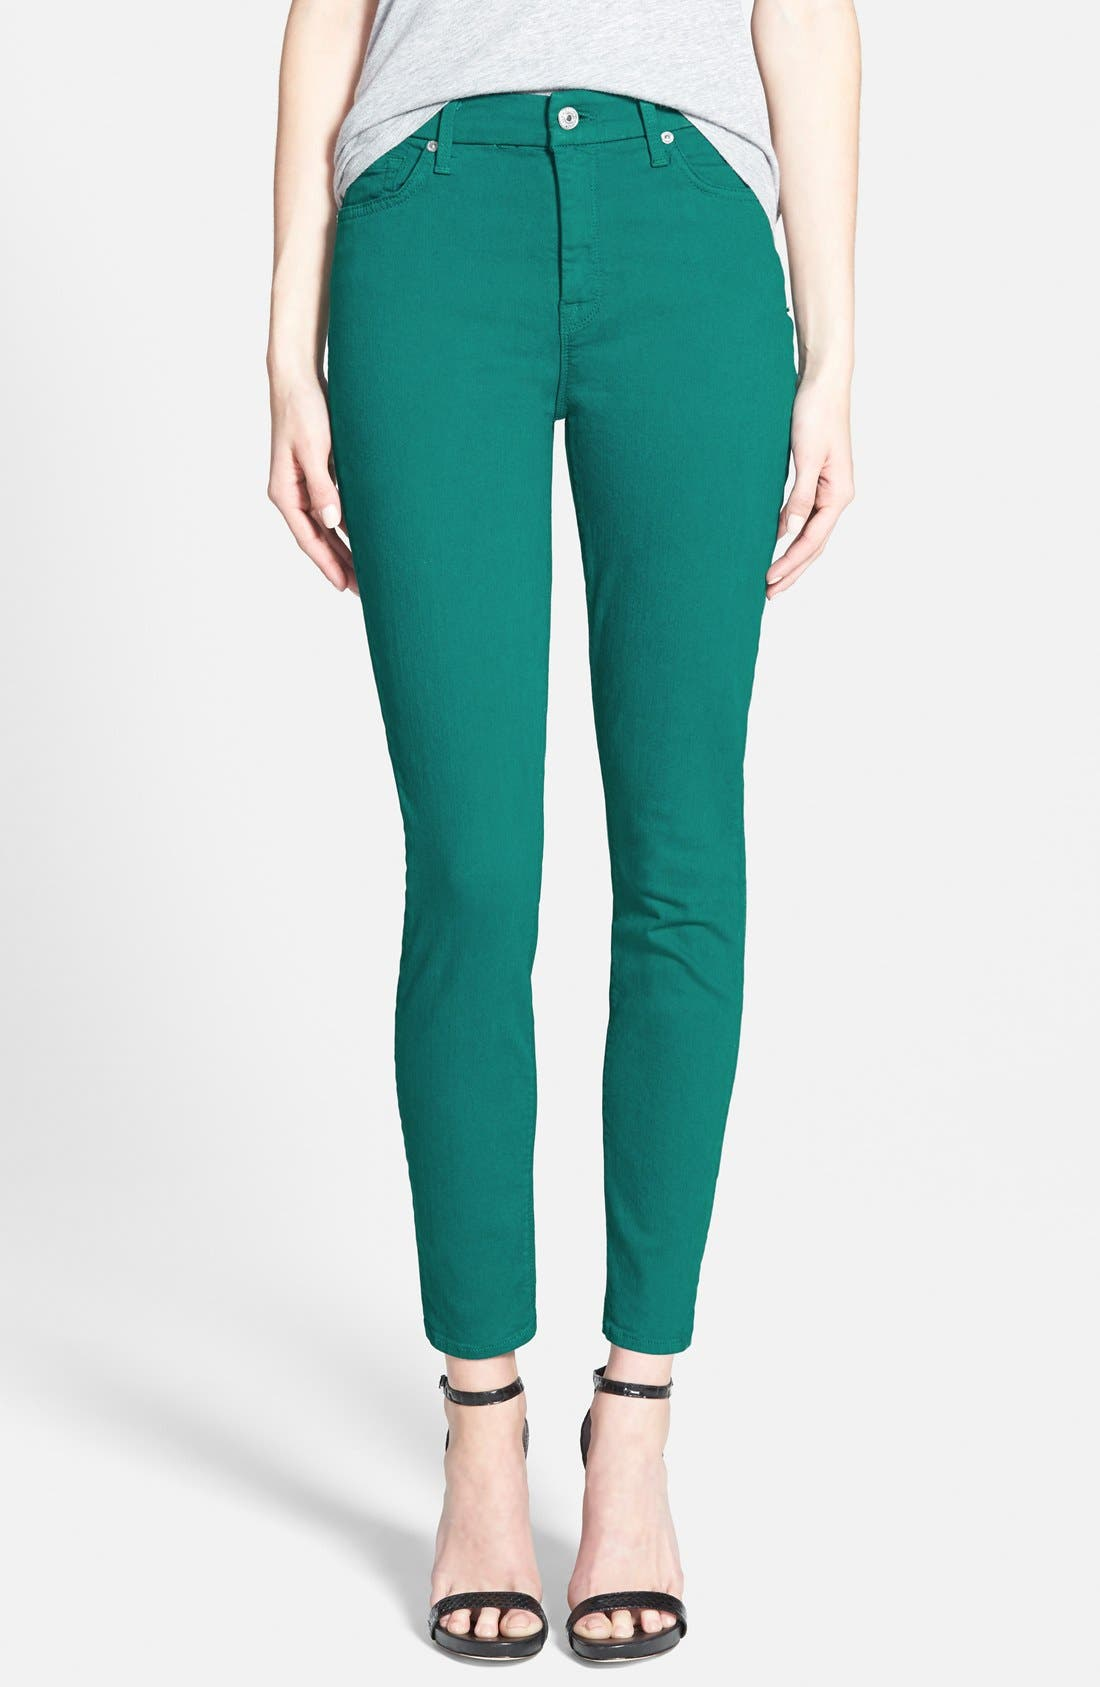 Main Image - 7 For All Mankind® High Rise Ankle Skinny Jeans (Teal Green)